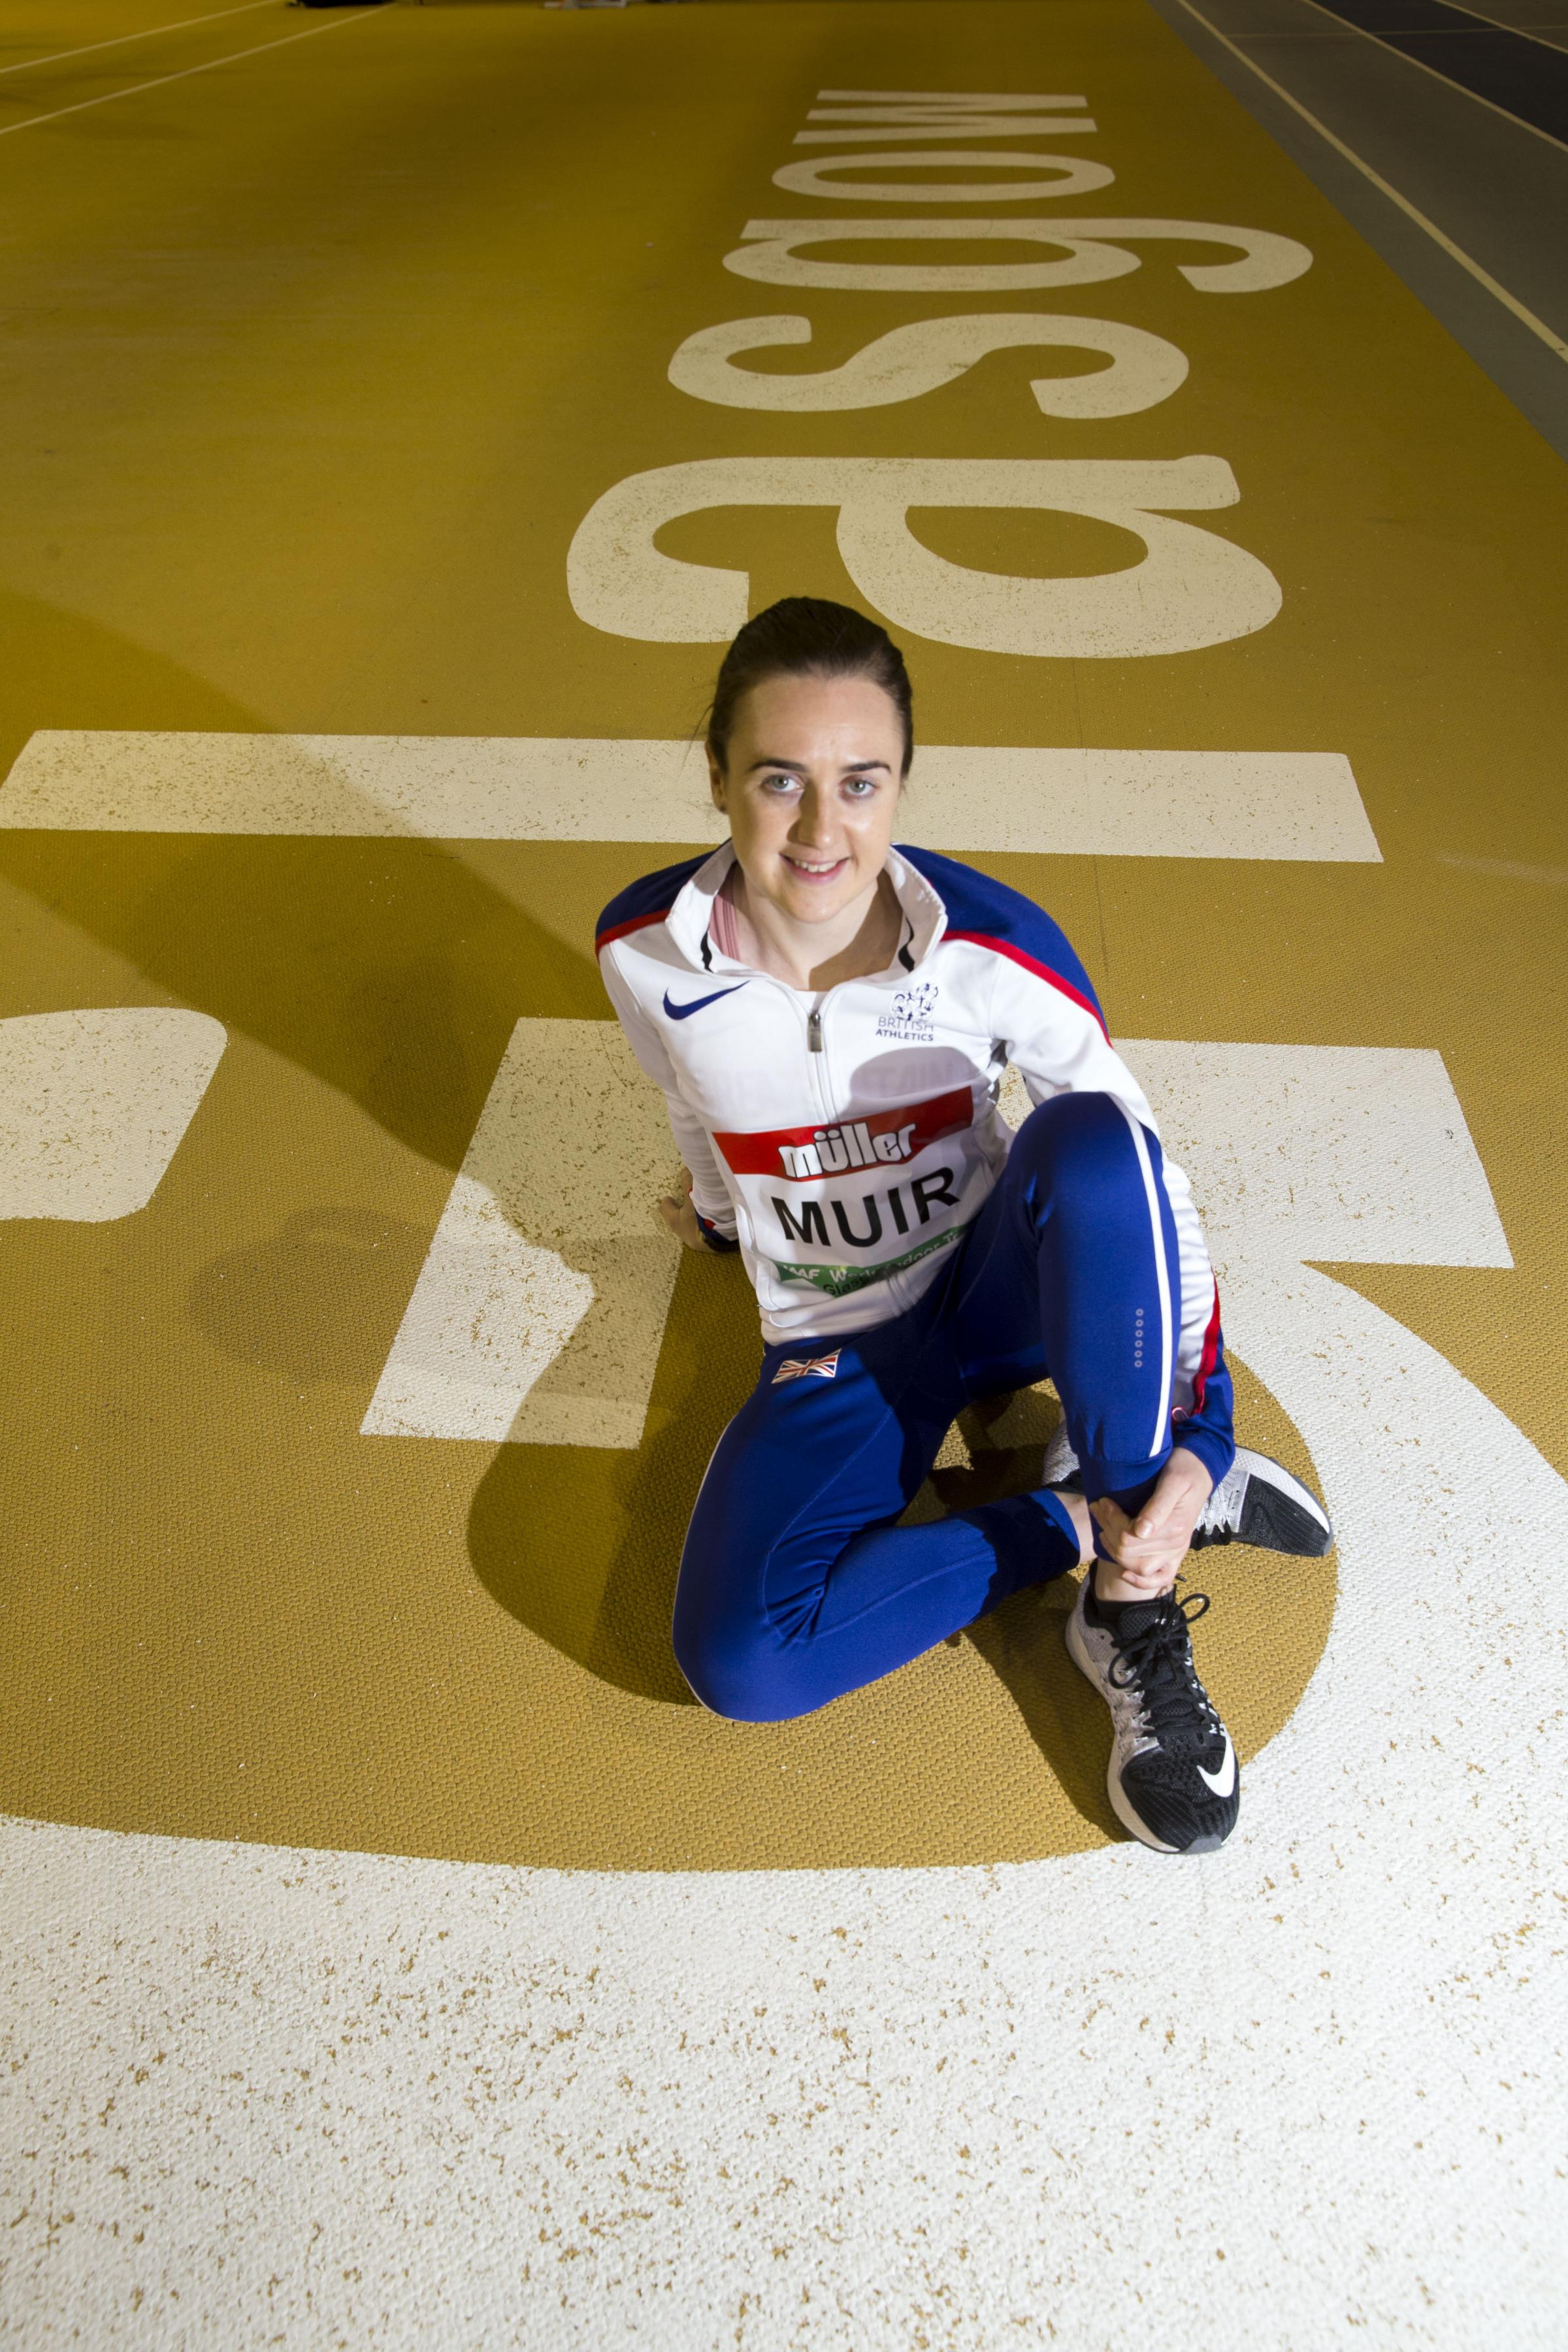 Stiff competition for Laura Muir for top award